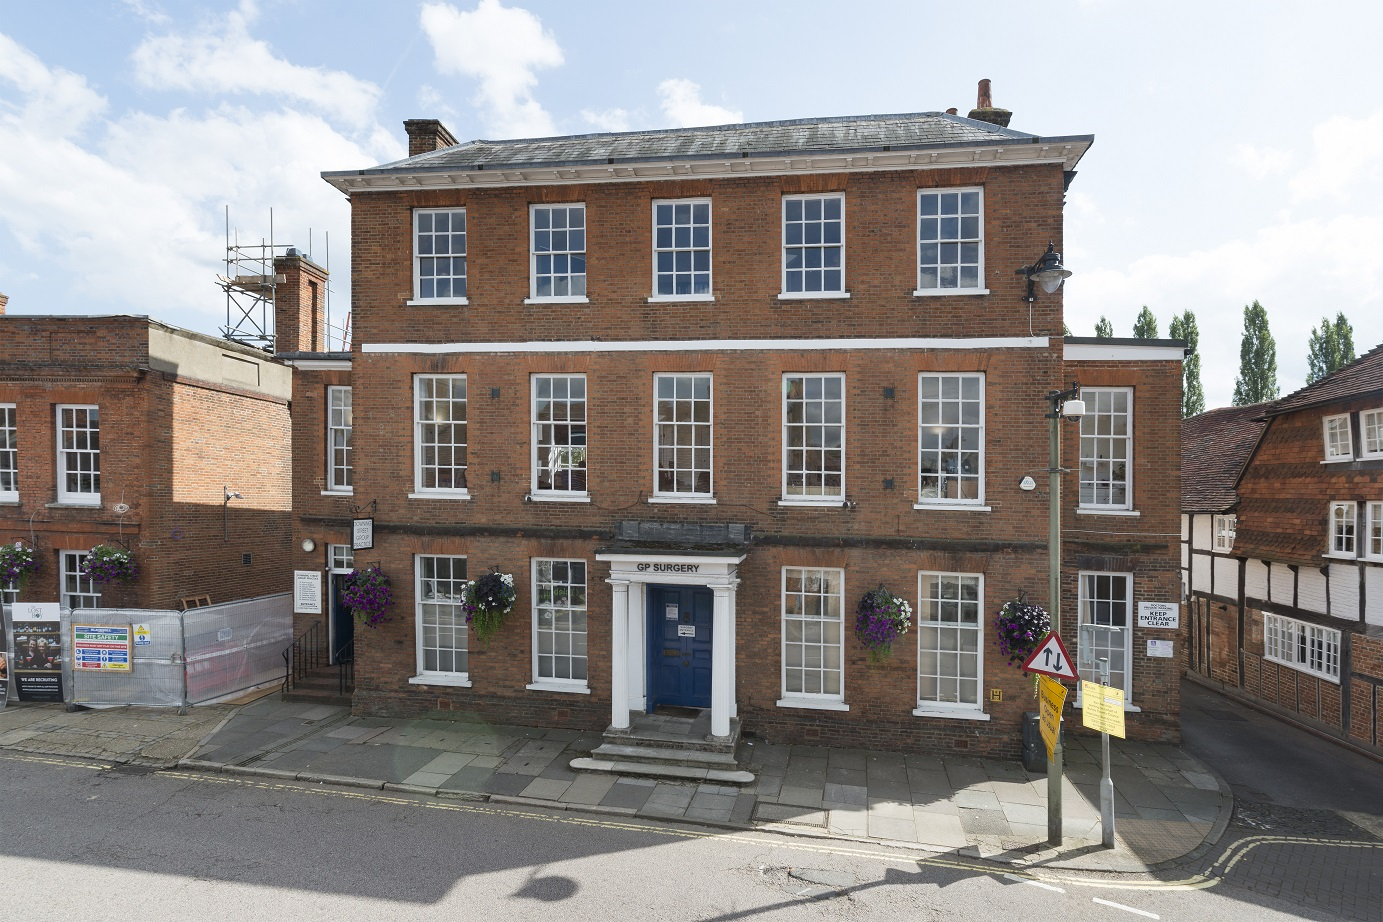 FREEHOLD MEDICAL CENTRE INVESTMENT – 4 DOWNING STREET, FARNHAM, SURREY GU9 7PA